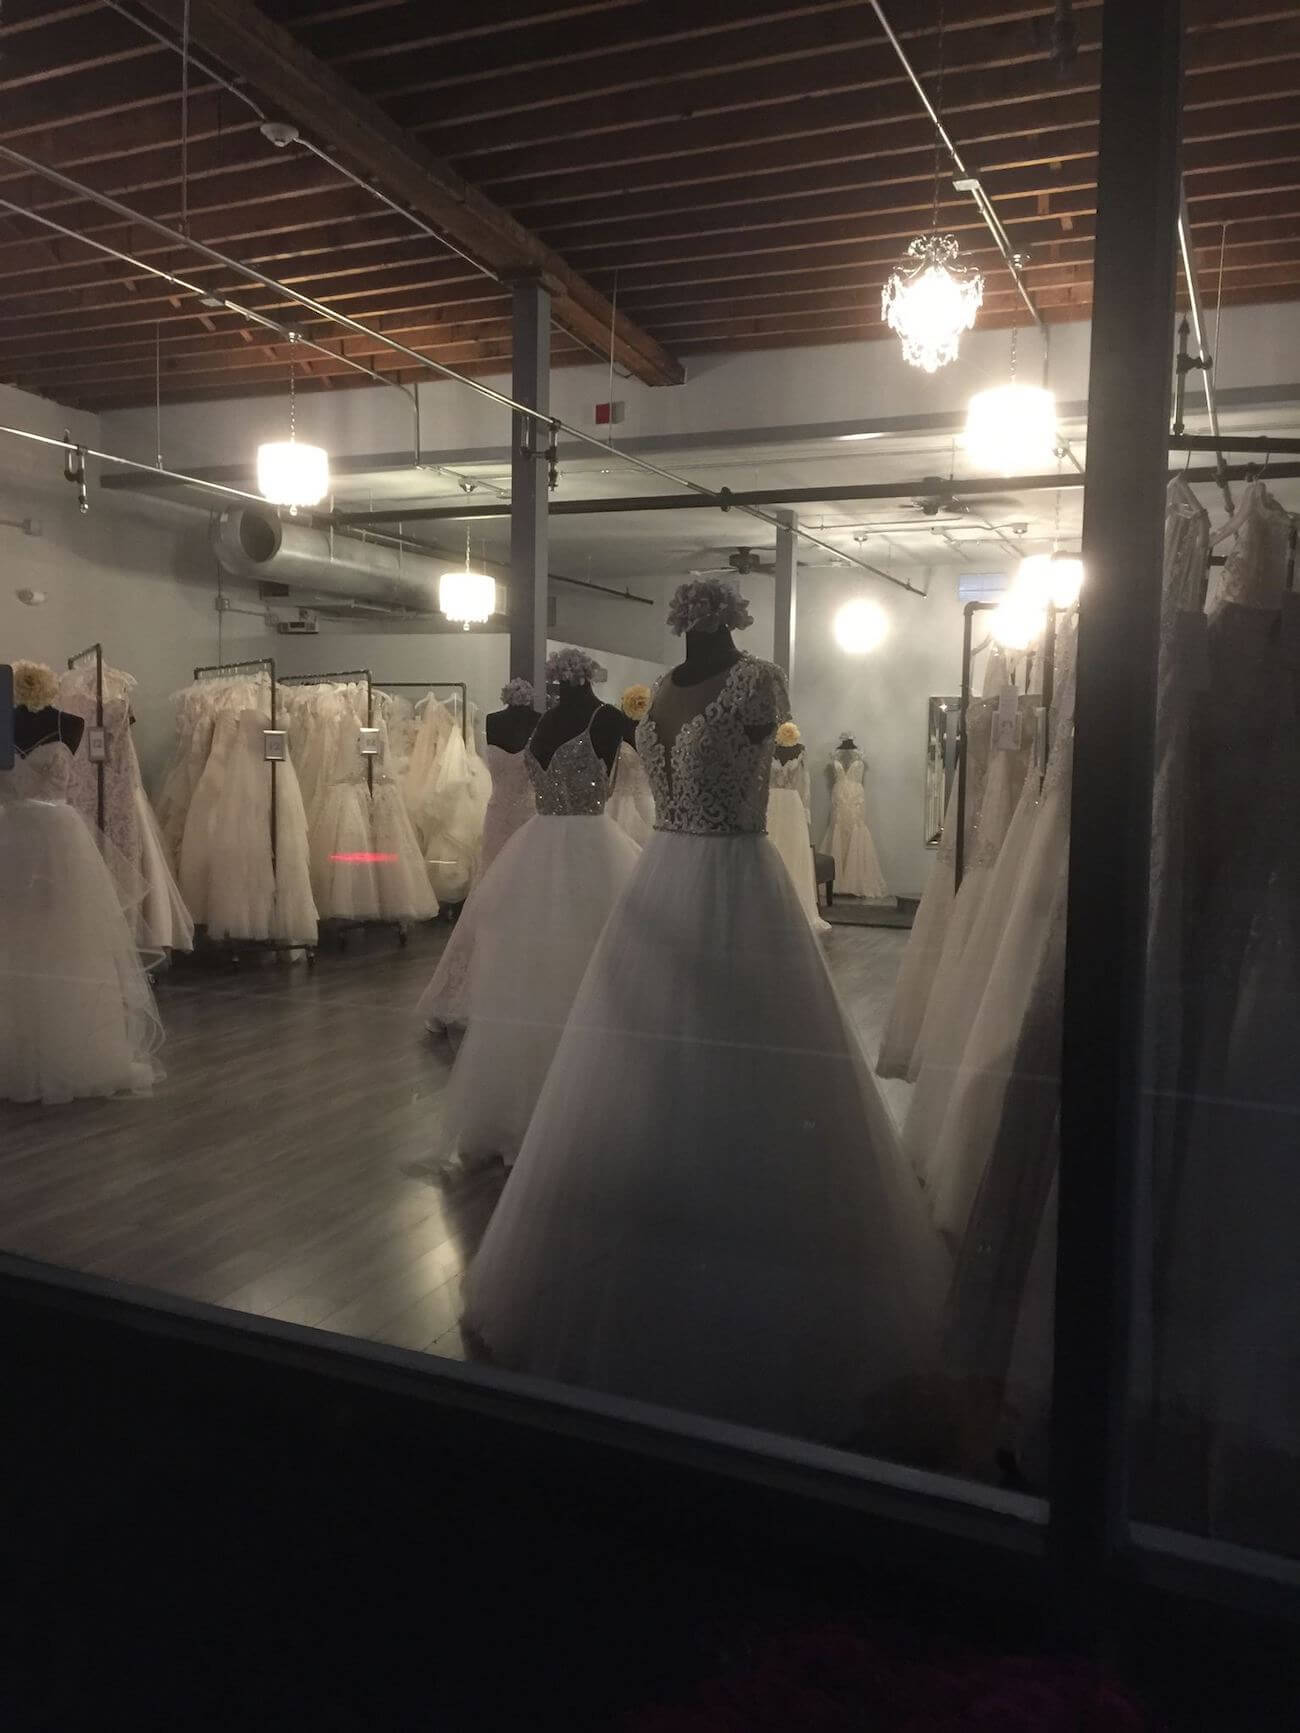 Nighttime photo of The Bridal Secret, white gowns displayed on bodices with background lighting, wedding dresses on racks in distance.